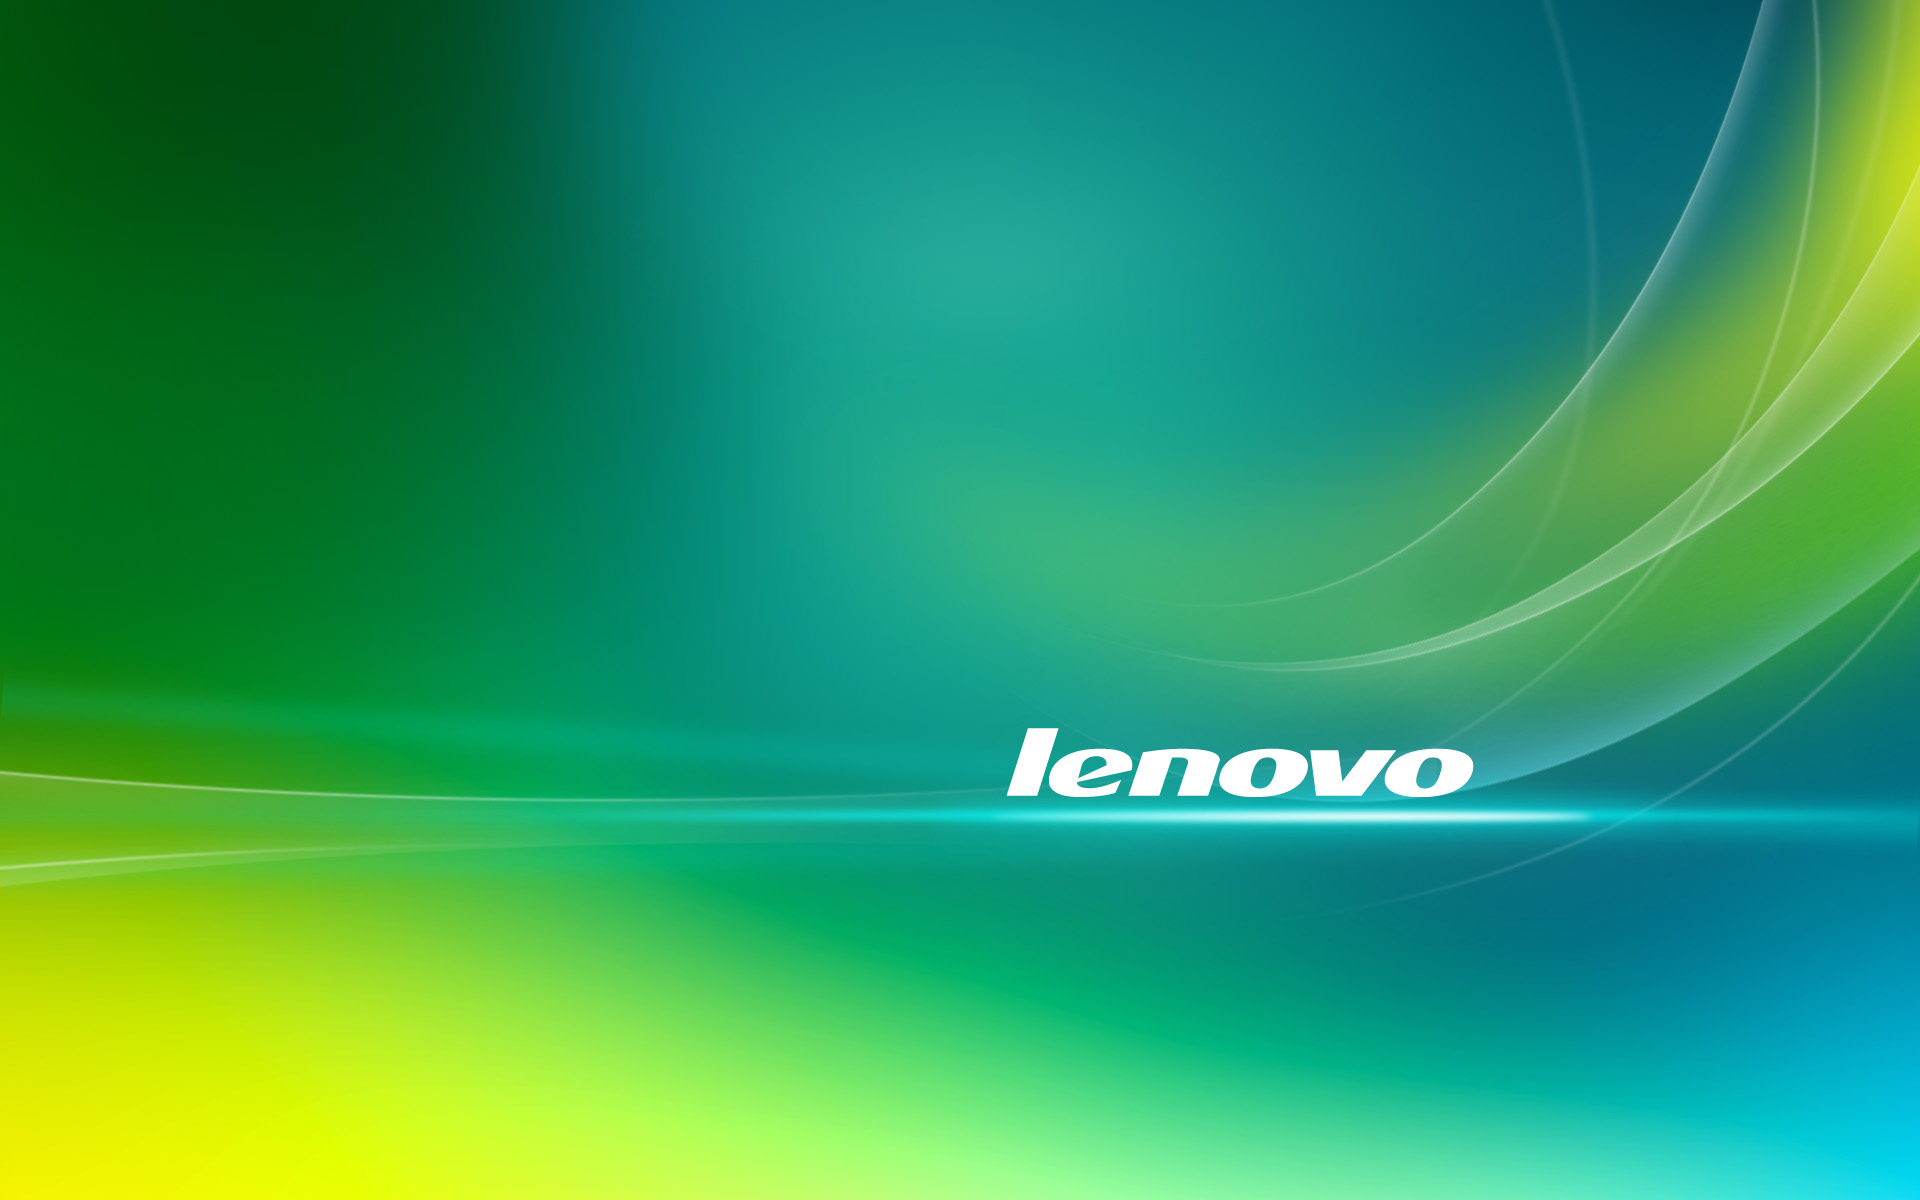 Lenovo Windows 10 Wallpaper on disney computer themes